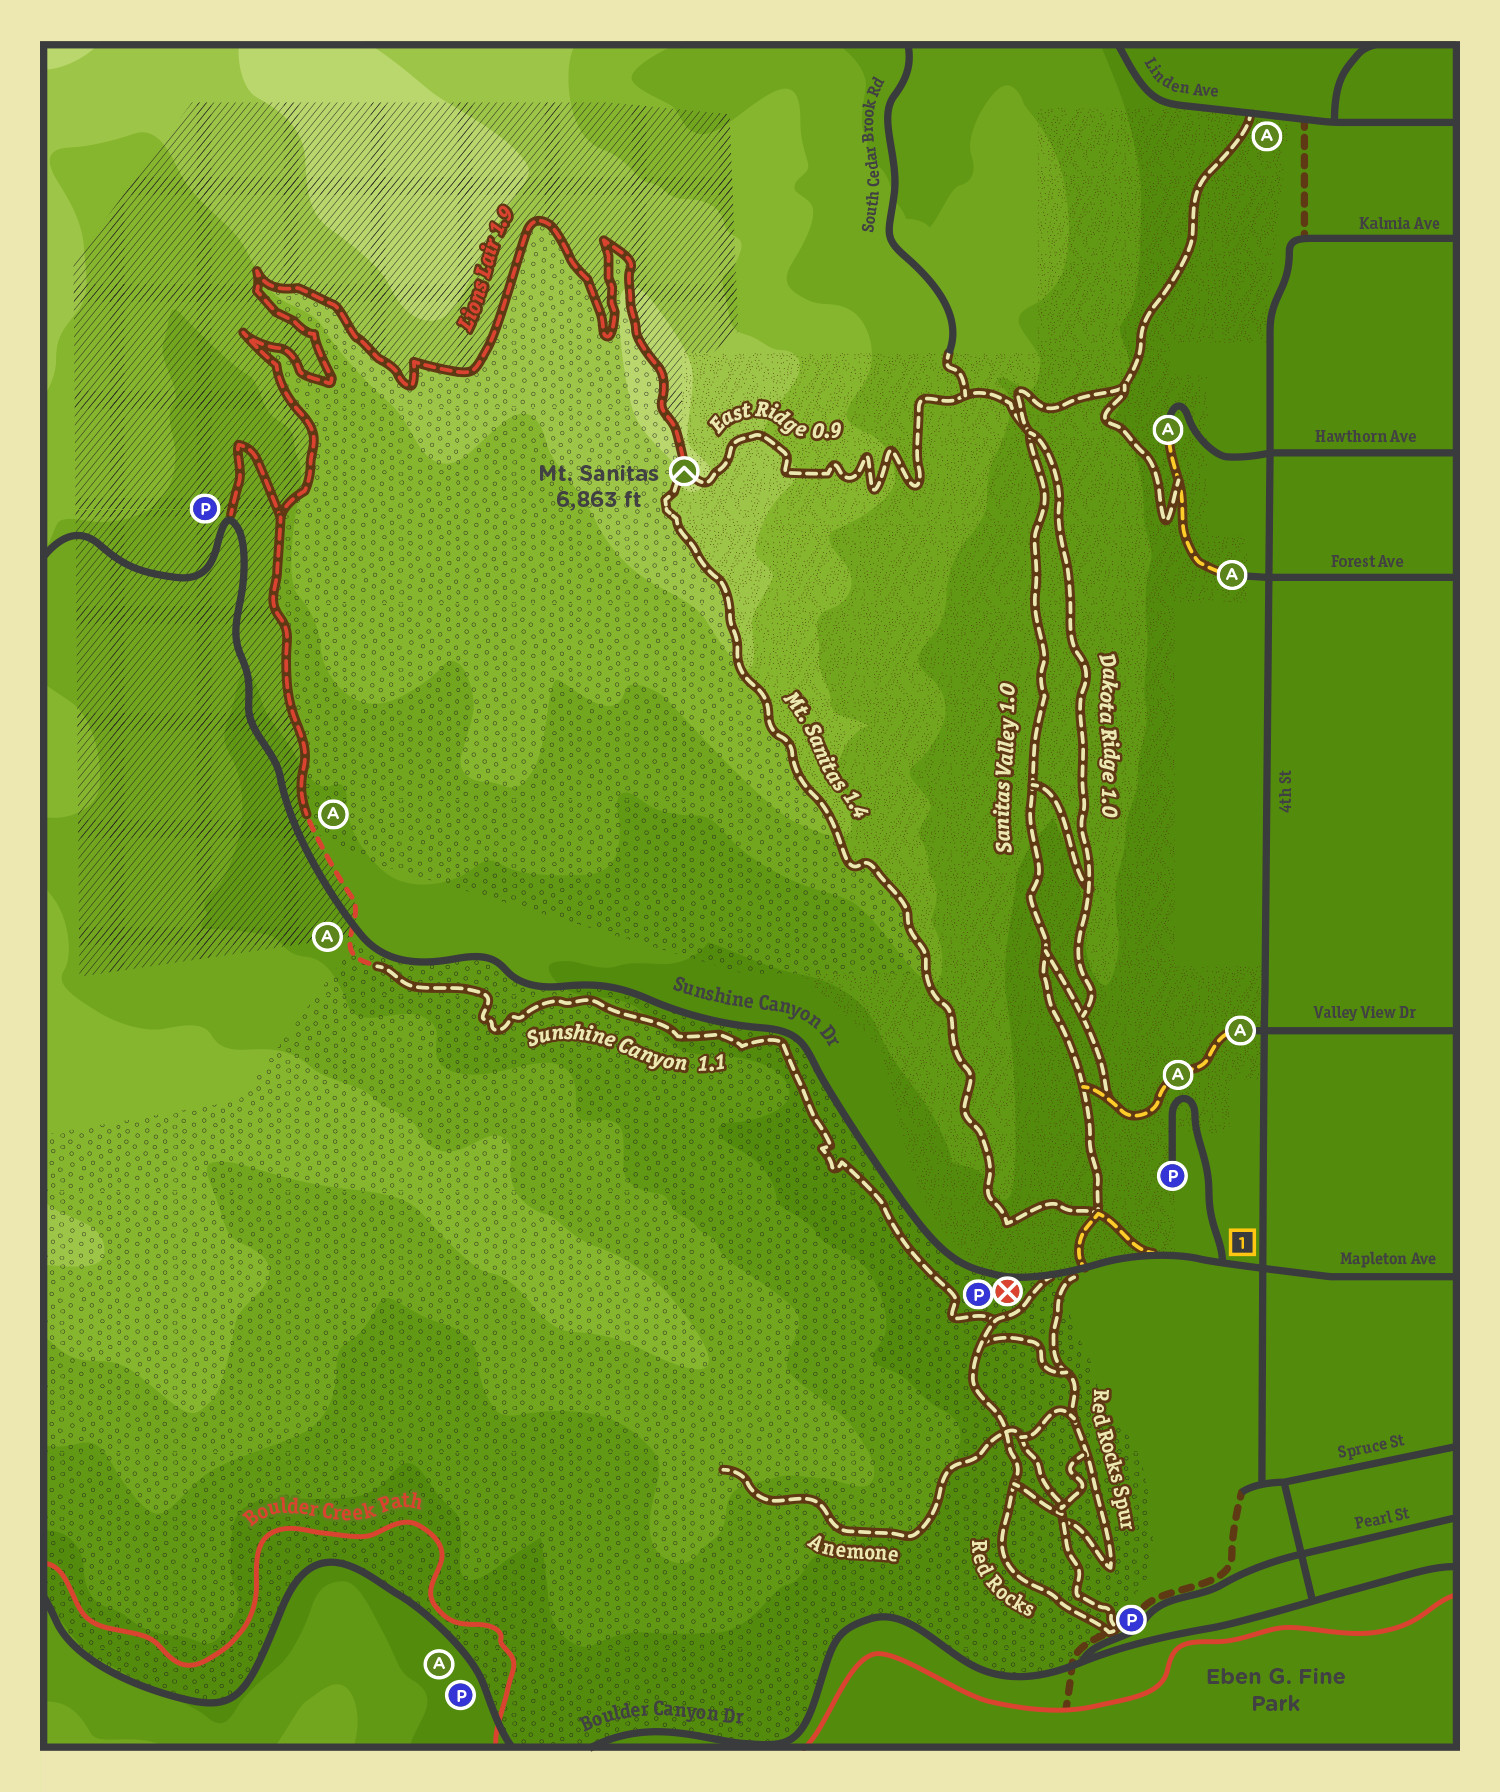 improved map system for Boulder County, CO (proposed)